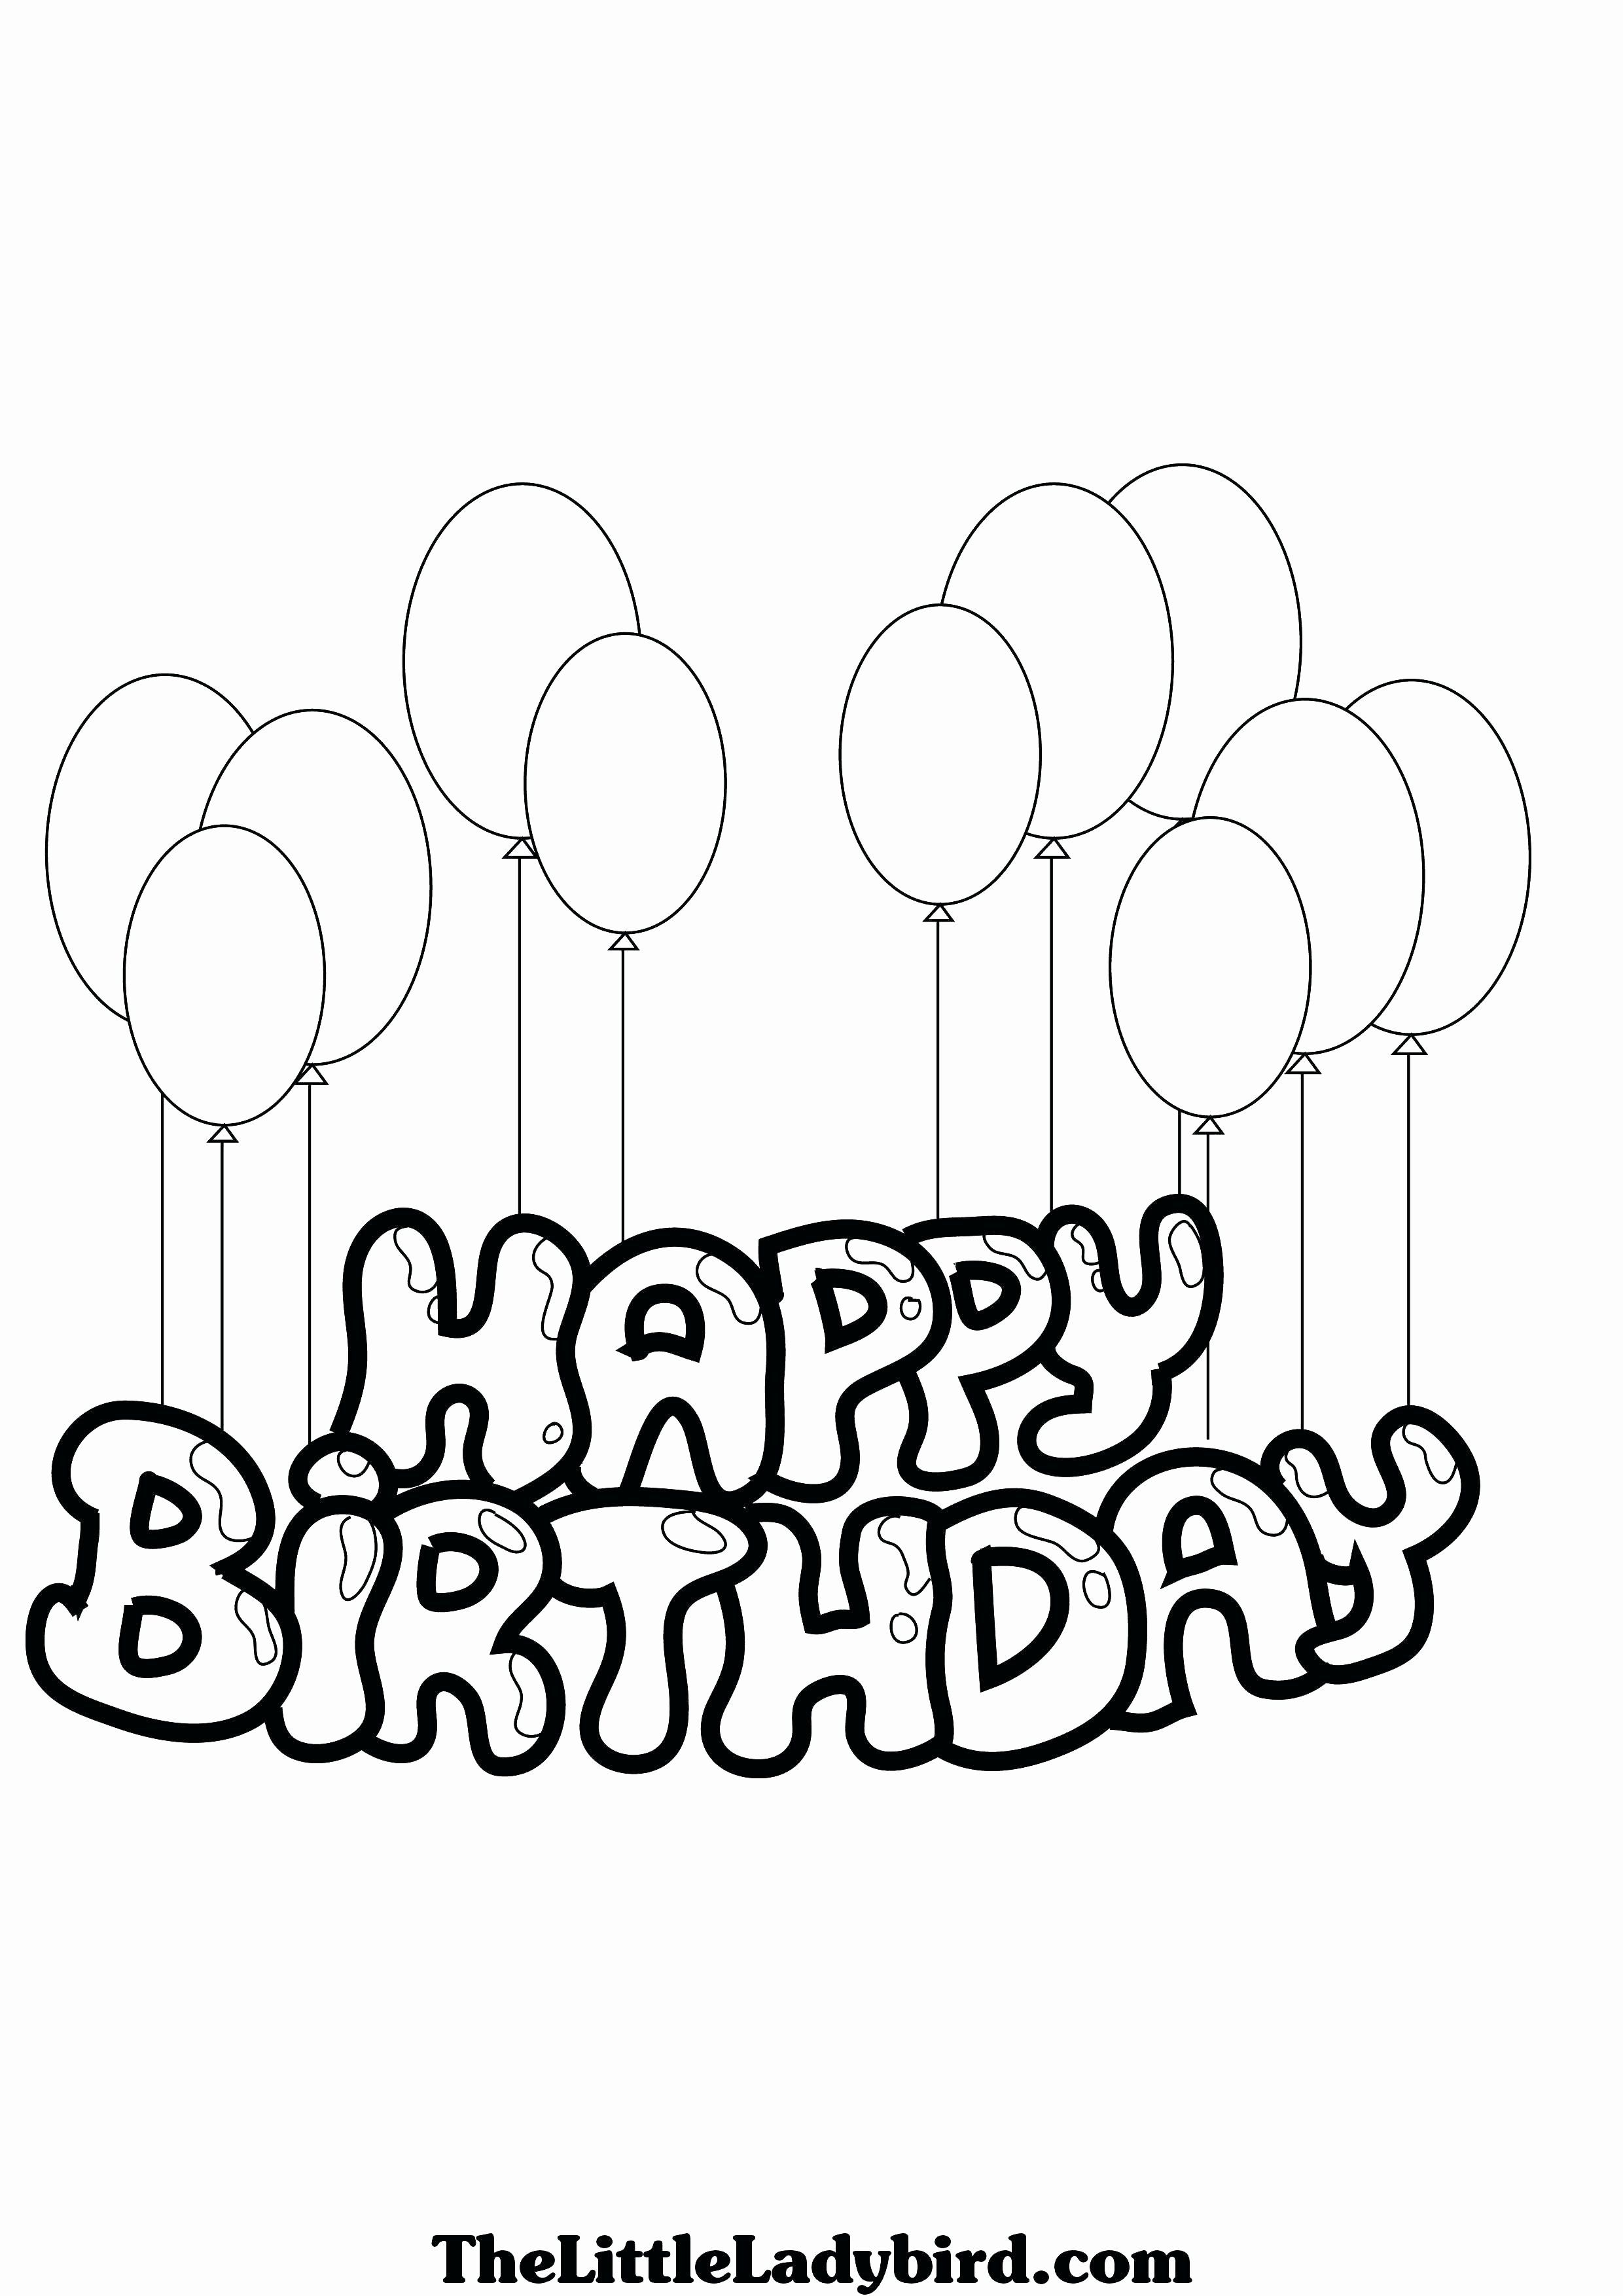 Birthday cards printable coloring with images birthday